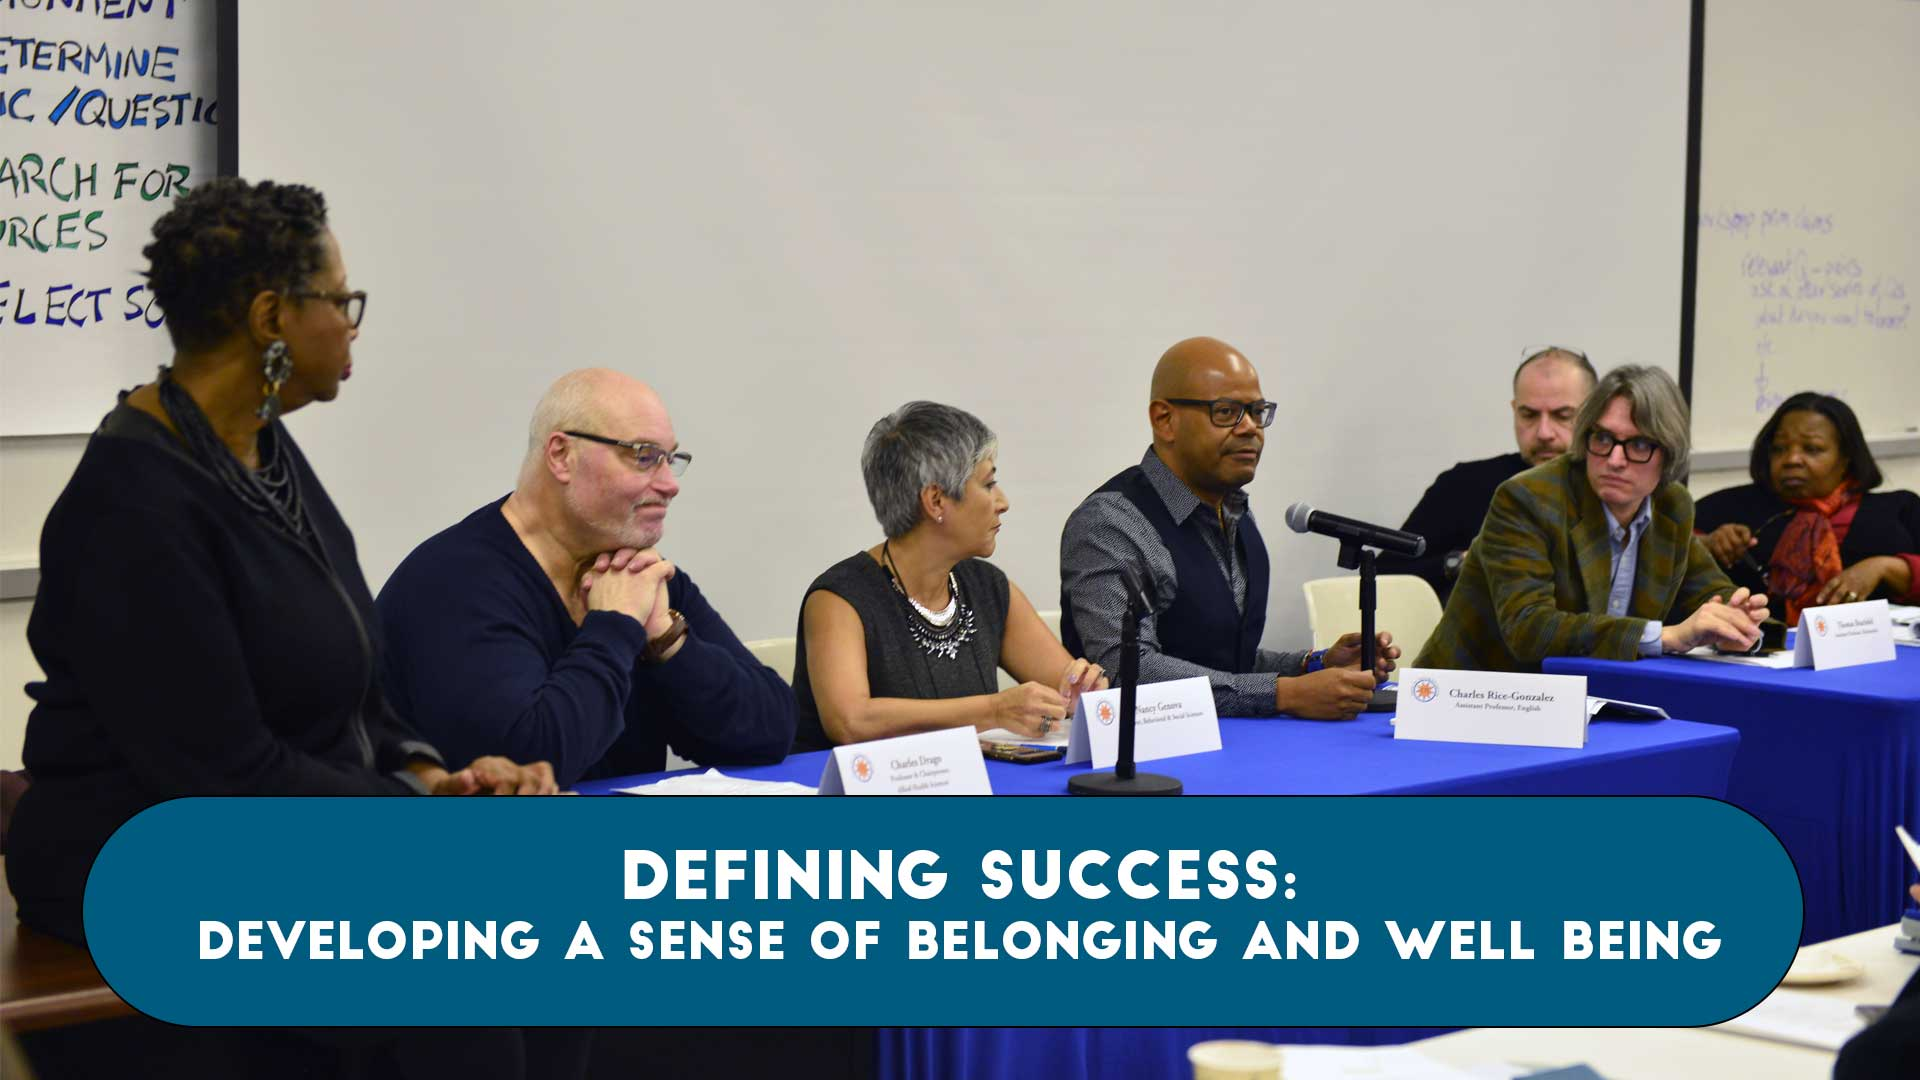 Defining Success: Developing a Sense of Belonging and Well Being